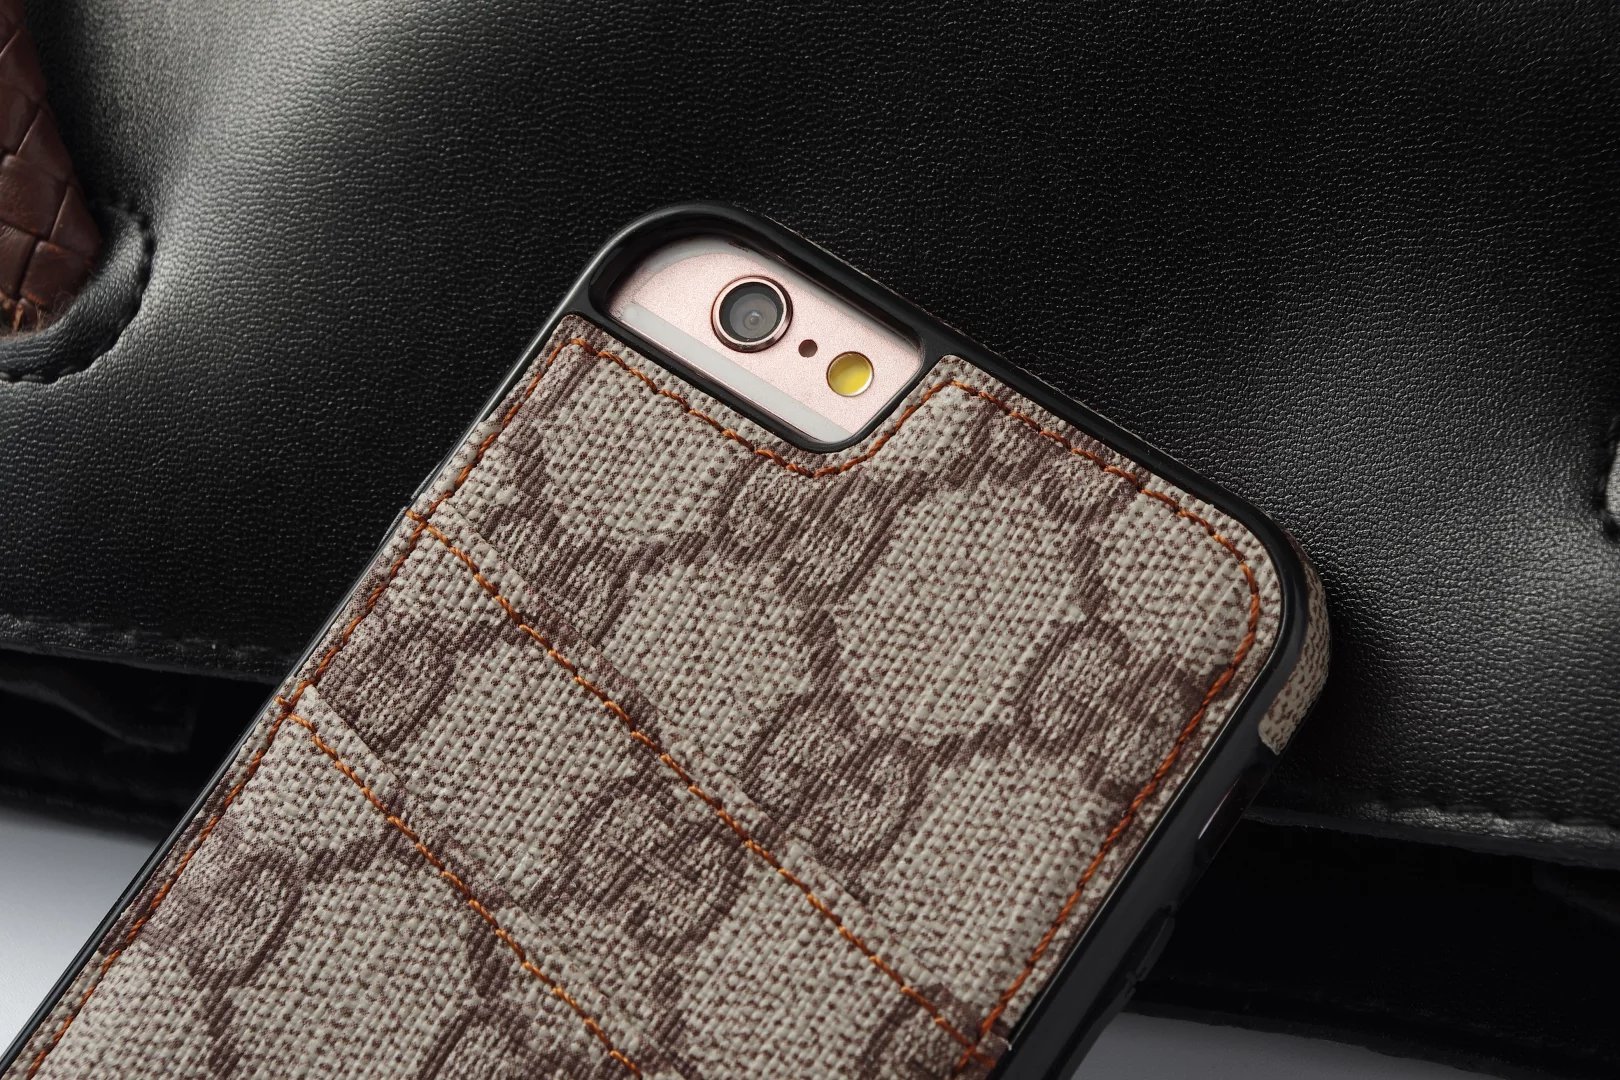 iphone hülle eigenes foto iphone lederhülle Gucci iphone7 Plus hülle iphone 6 erscheinung iphone 7 Plus angebot iphone foto hülle fotohülle handy iphone 7 Plus hülle billig iphone 7 Plus ca7 gestalten